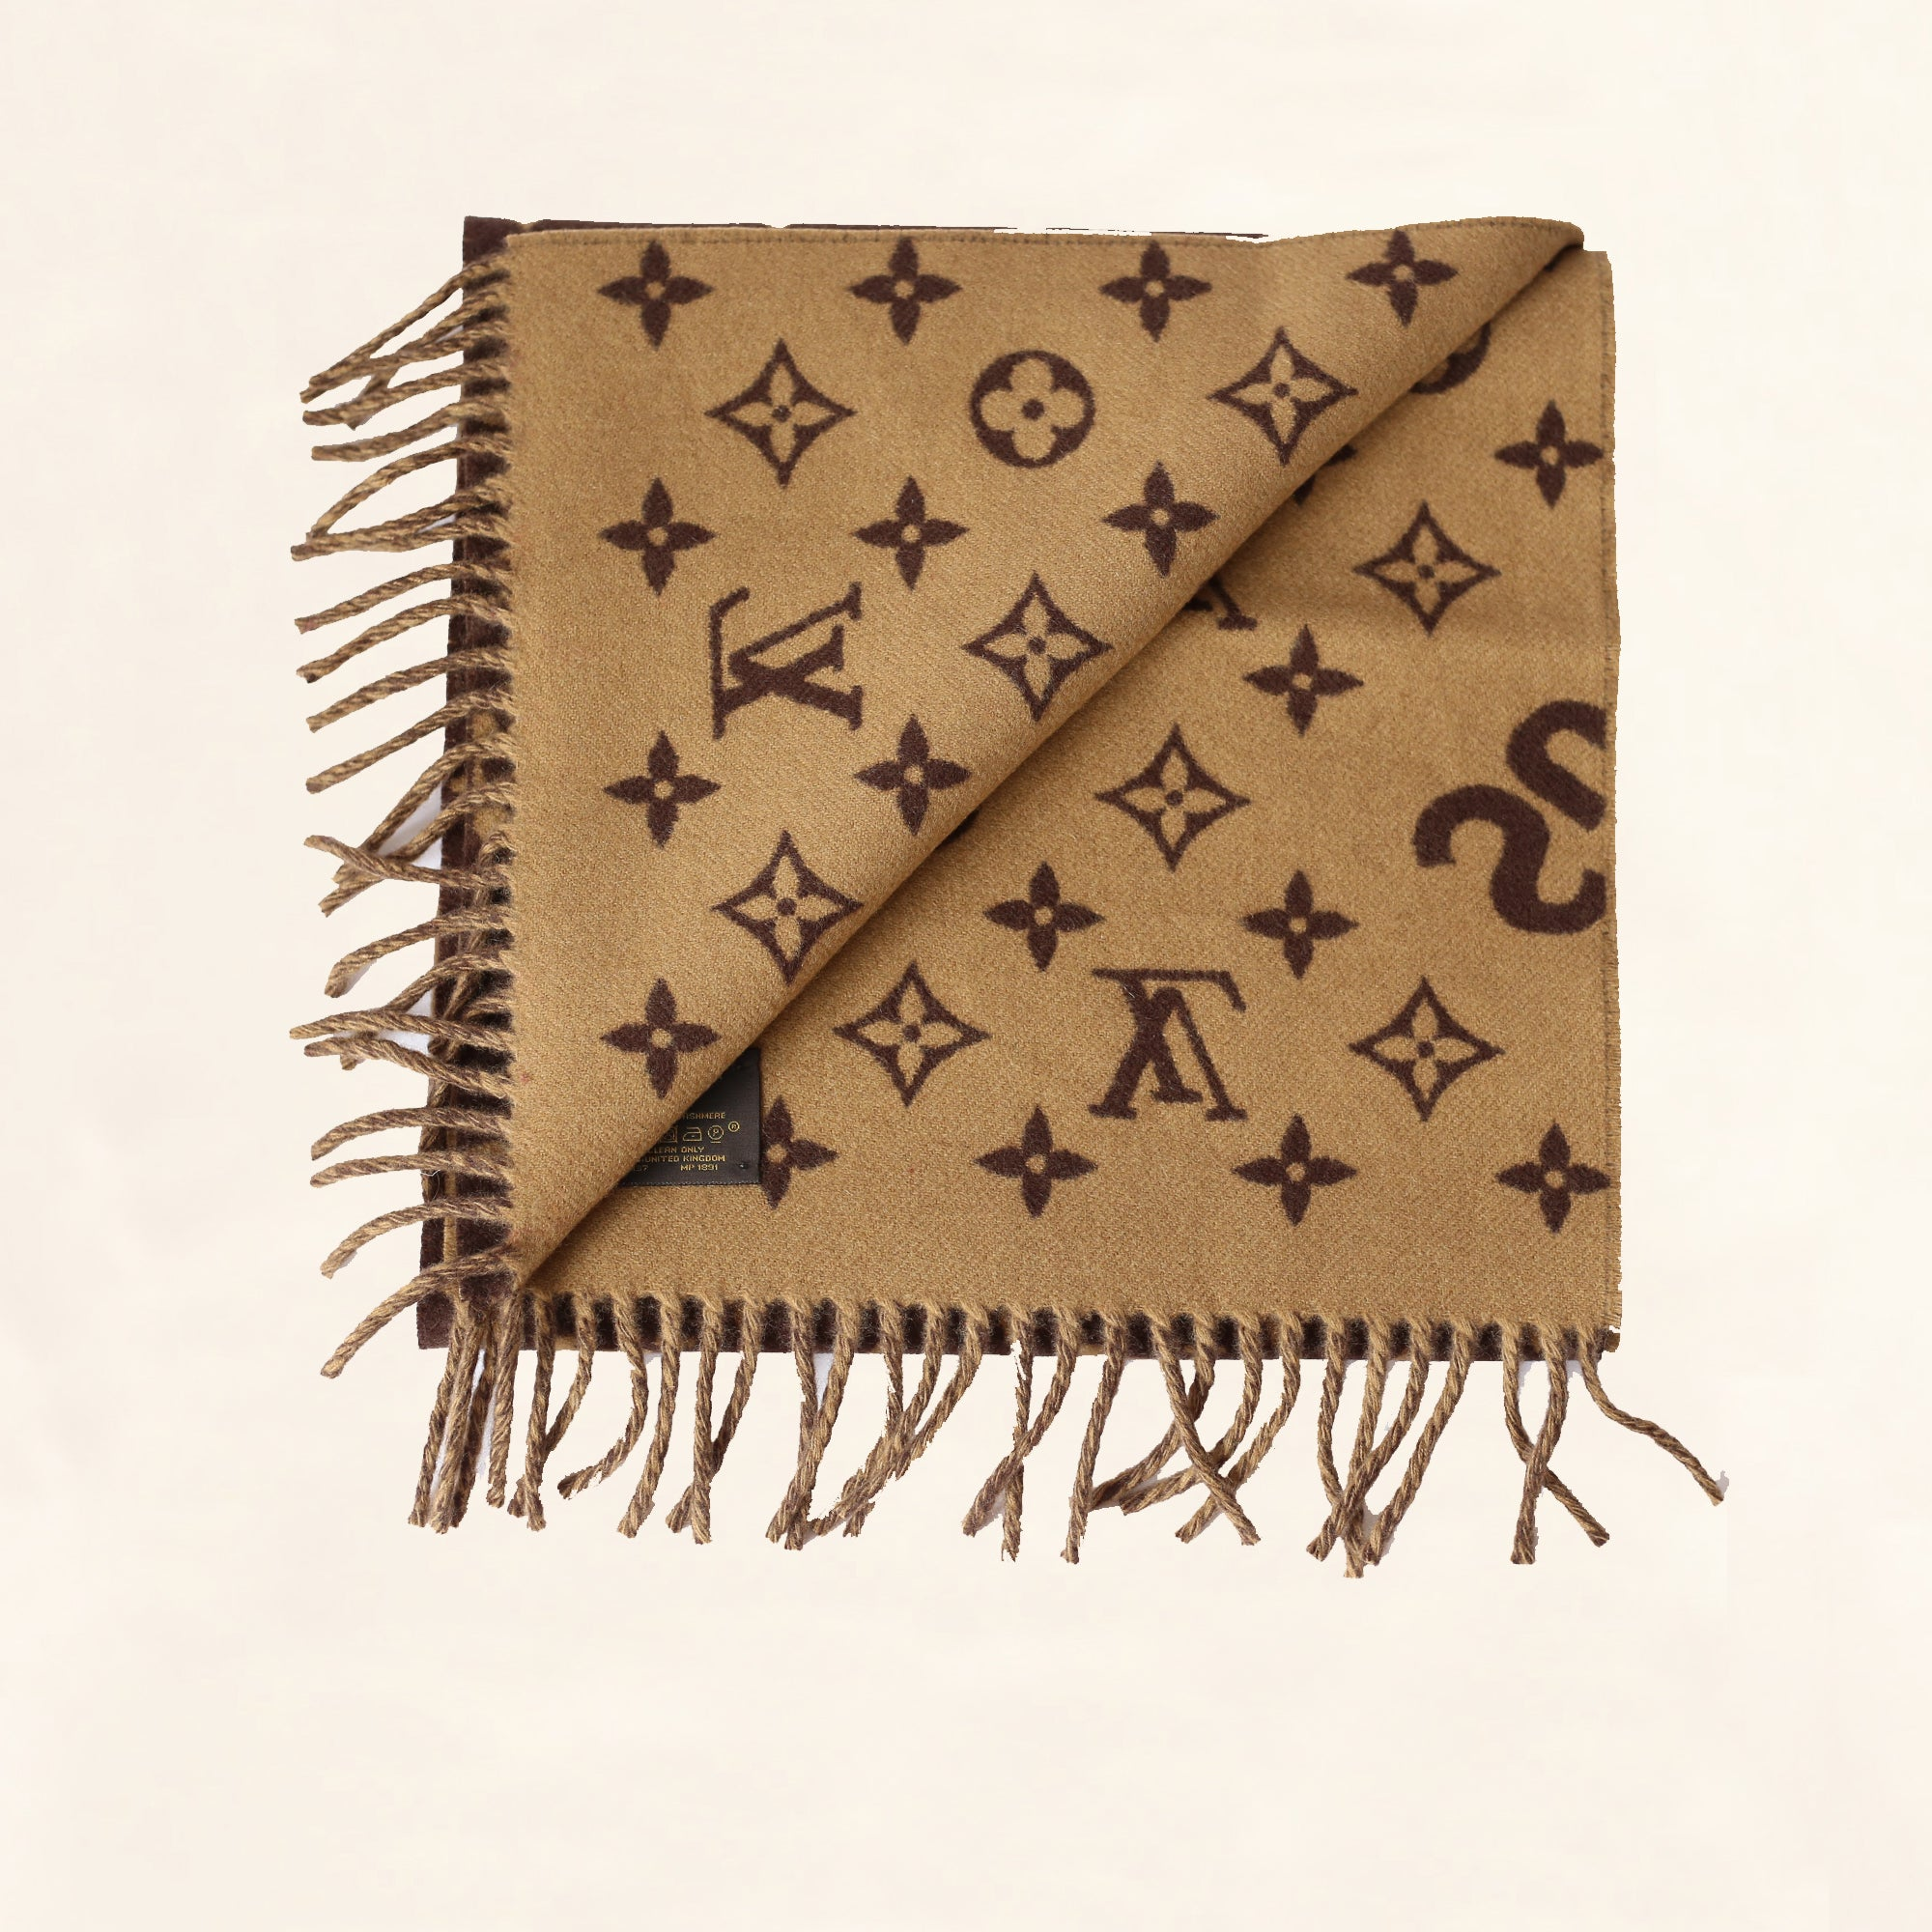 d0153a3373b2 Louis Vuitton | Supreme Scarf | Brown - The-Collectory